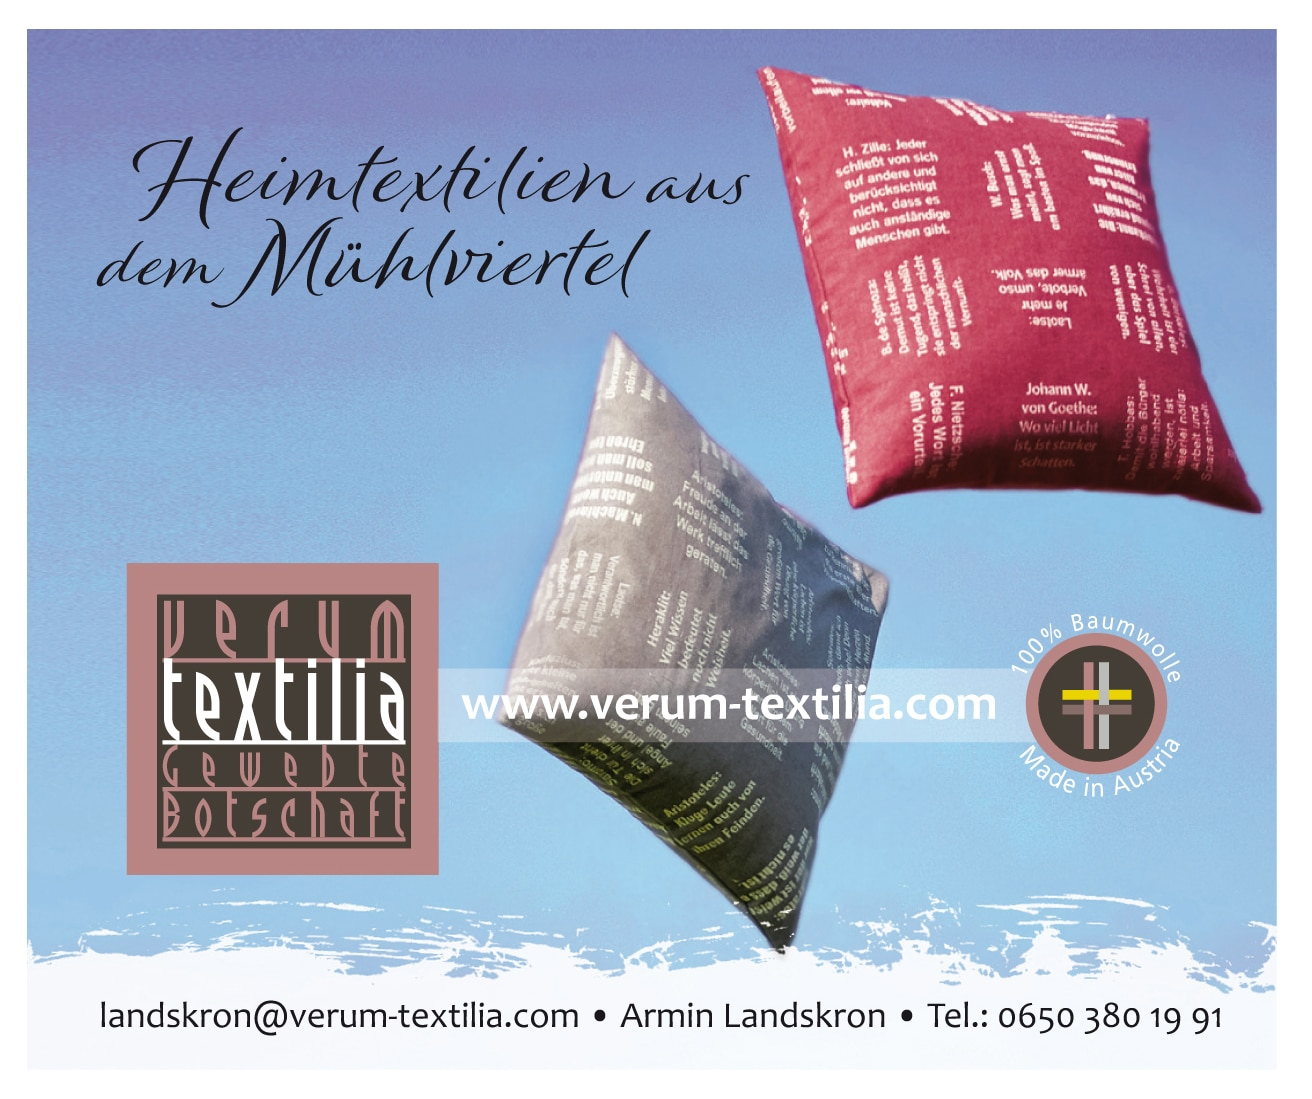 verum textilia Heimtextilien - Made in Austria